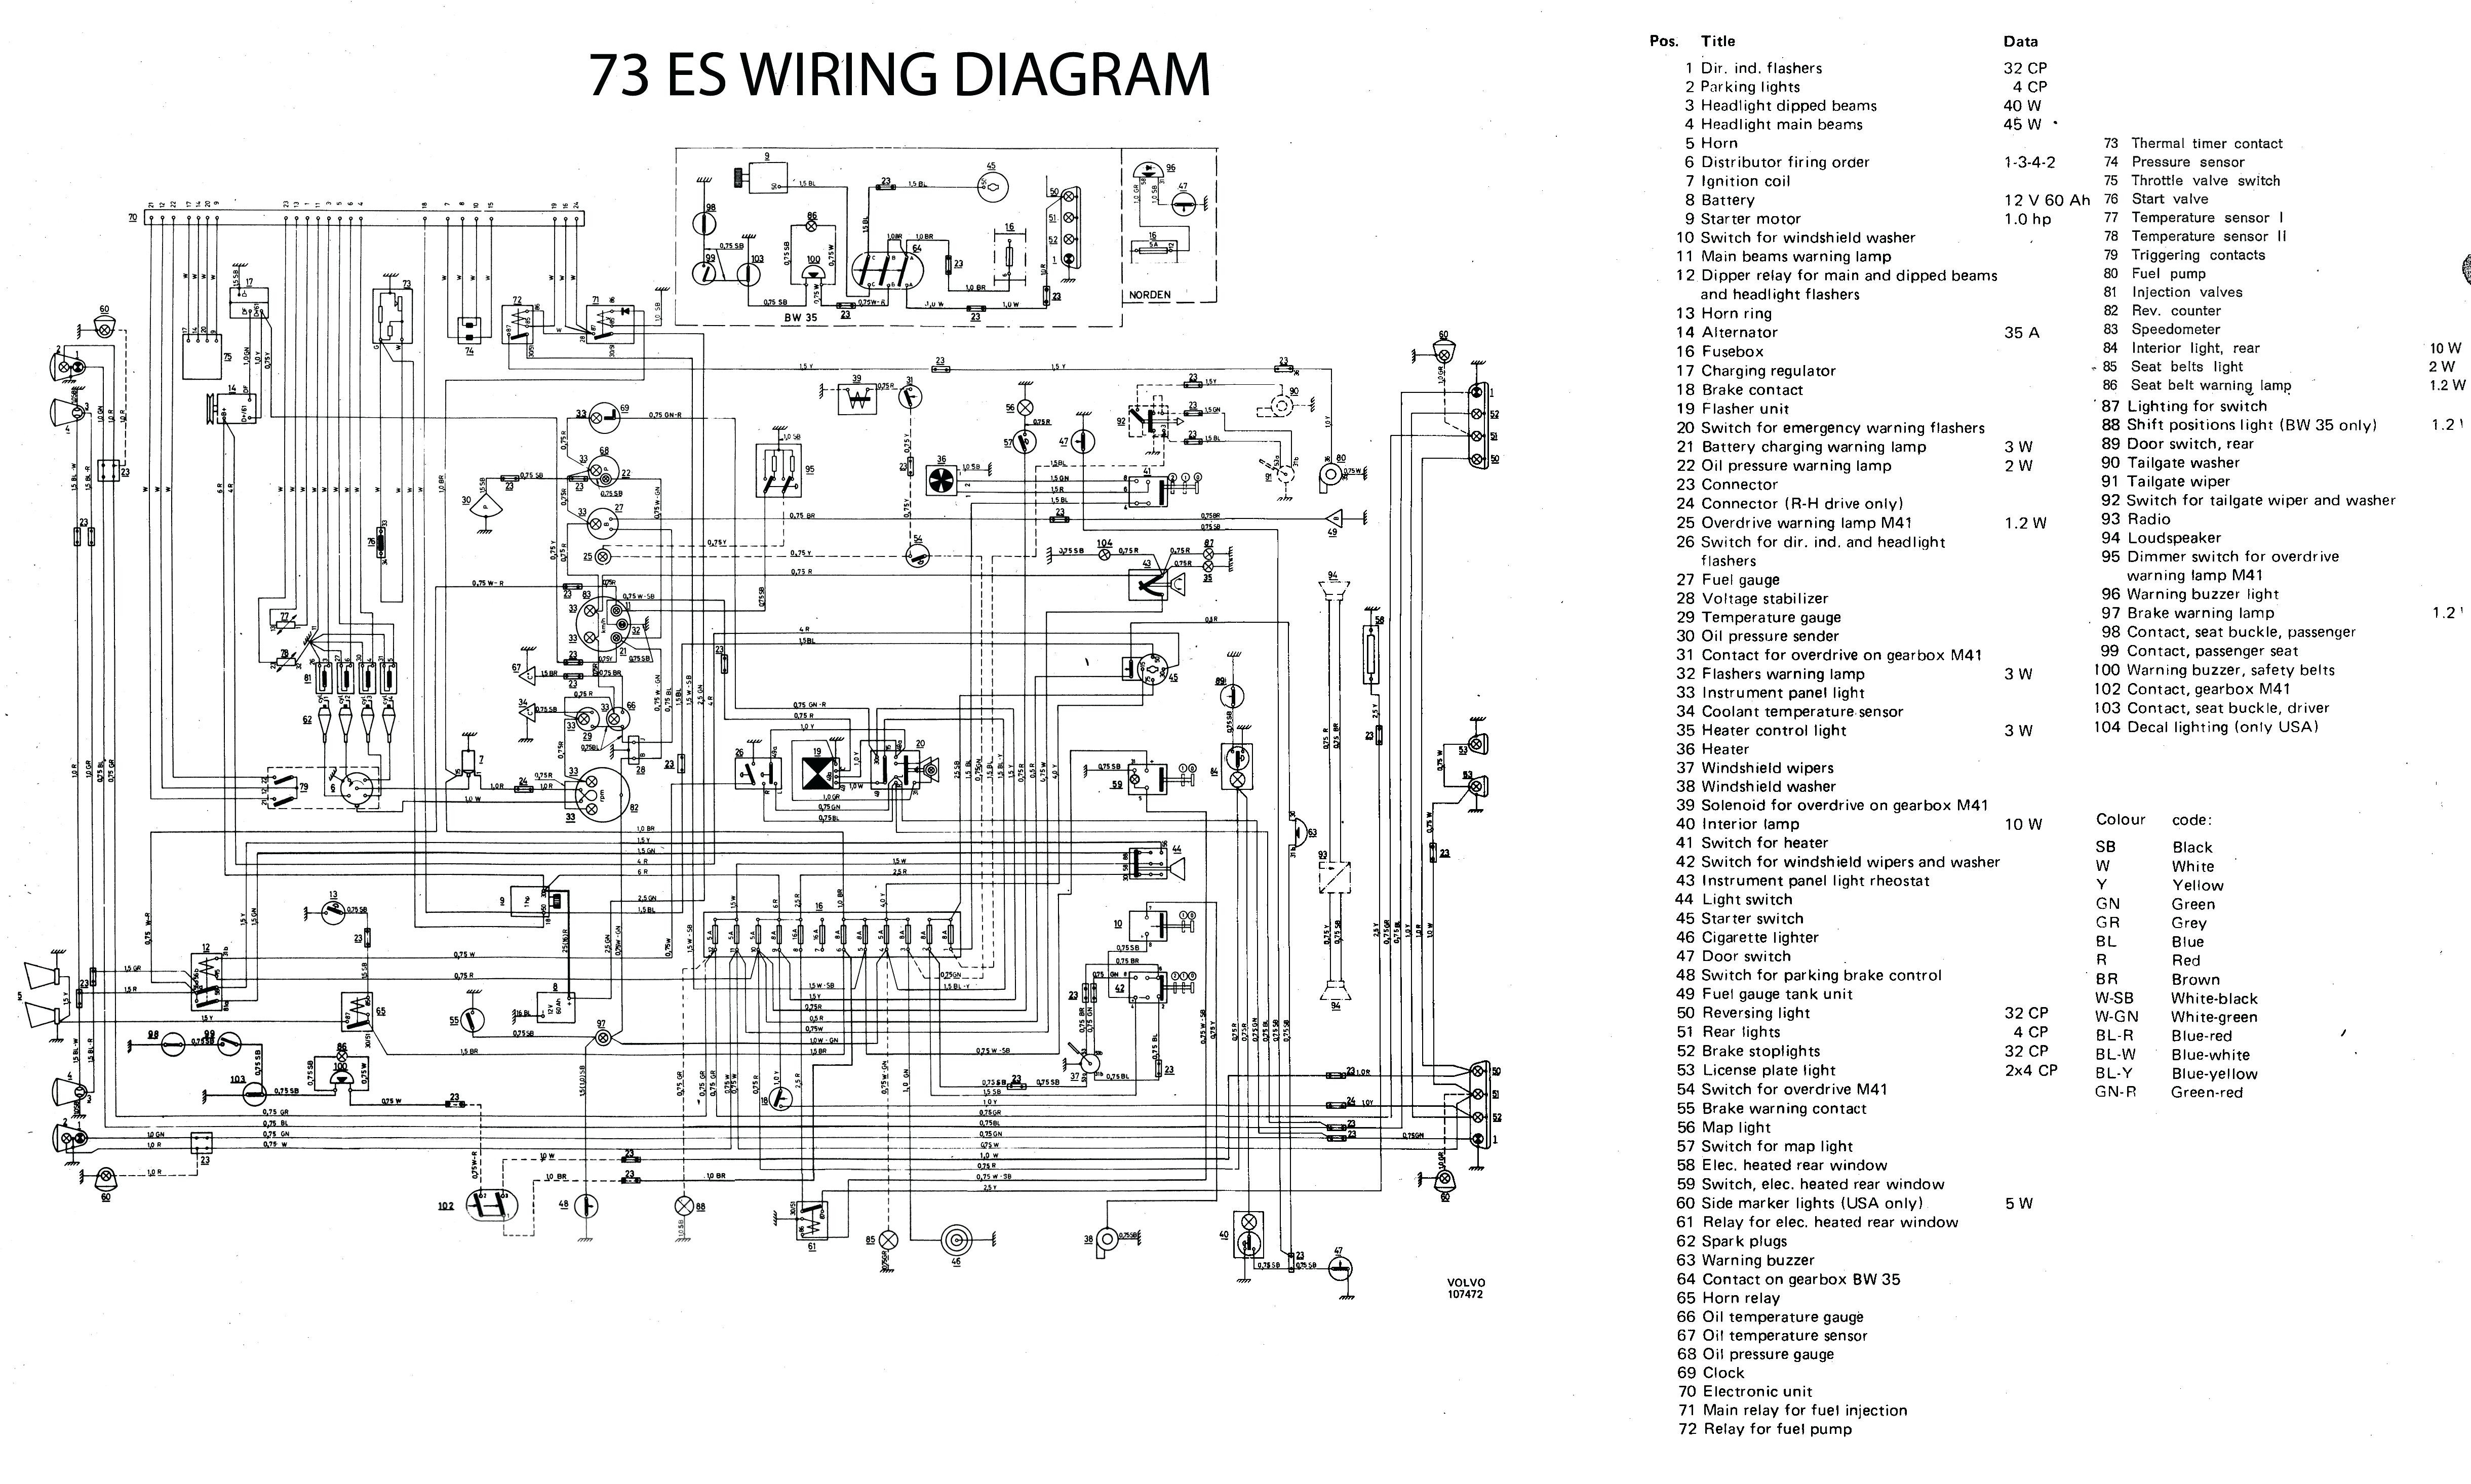 2004 volvo xc90 wiring diagram wiring diagram \u2022 rv battery wiring diagram wiring diagram xc90 free download wiring diagram xwiaw simple rh xwiaw us 2004 volvo xc90 abs wiring diagram 2004 volvo xc90 abs wiring diagram